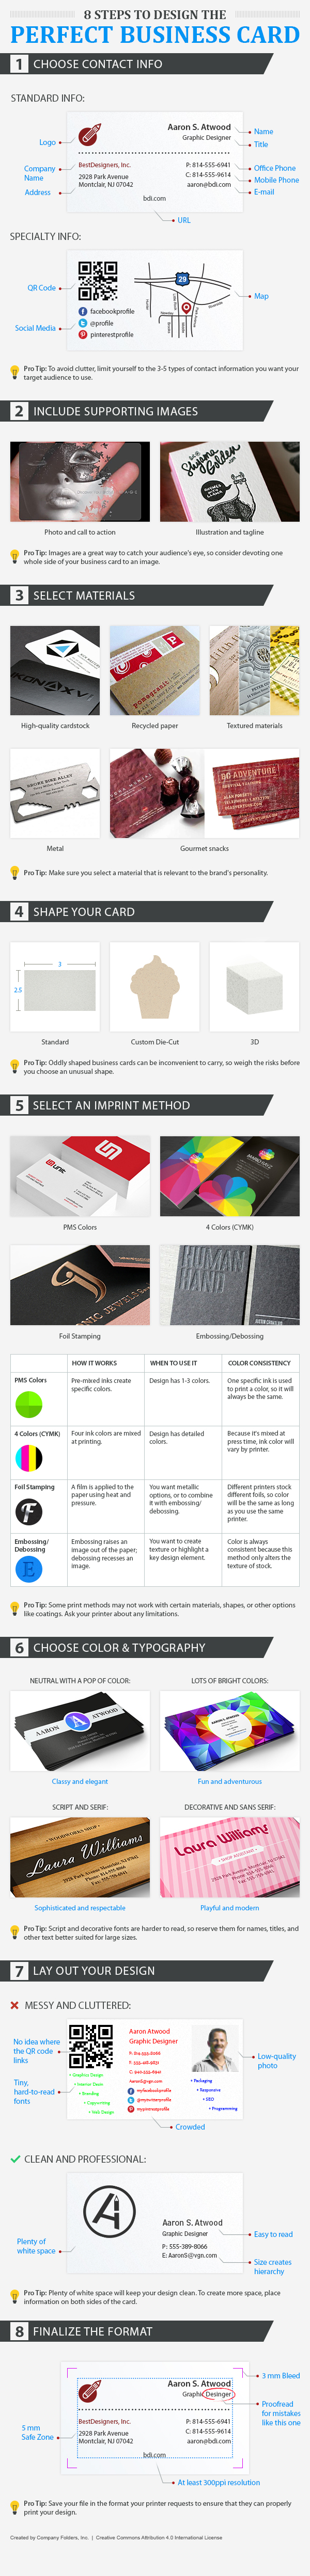 Business Card Design Tips: Top Ideas for Designers in 2017